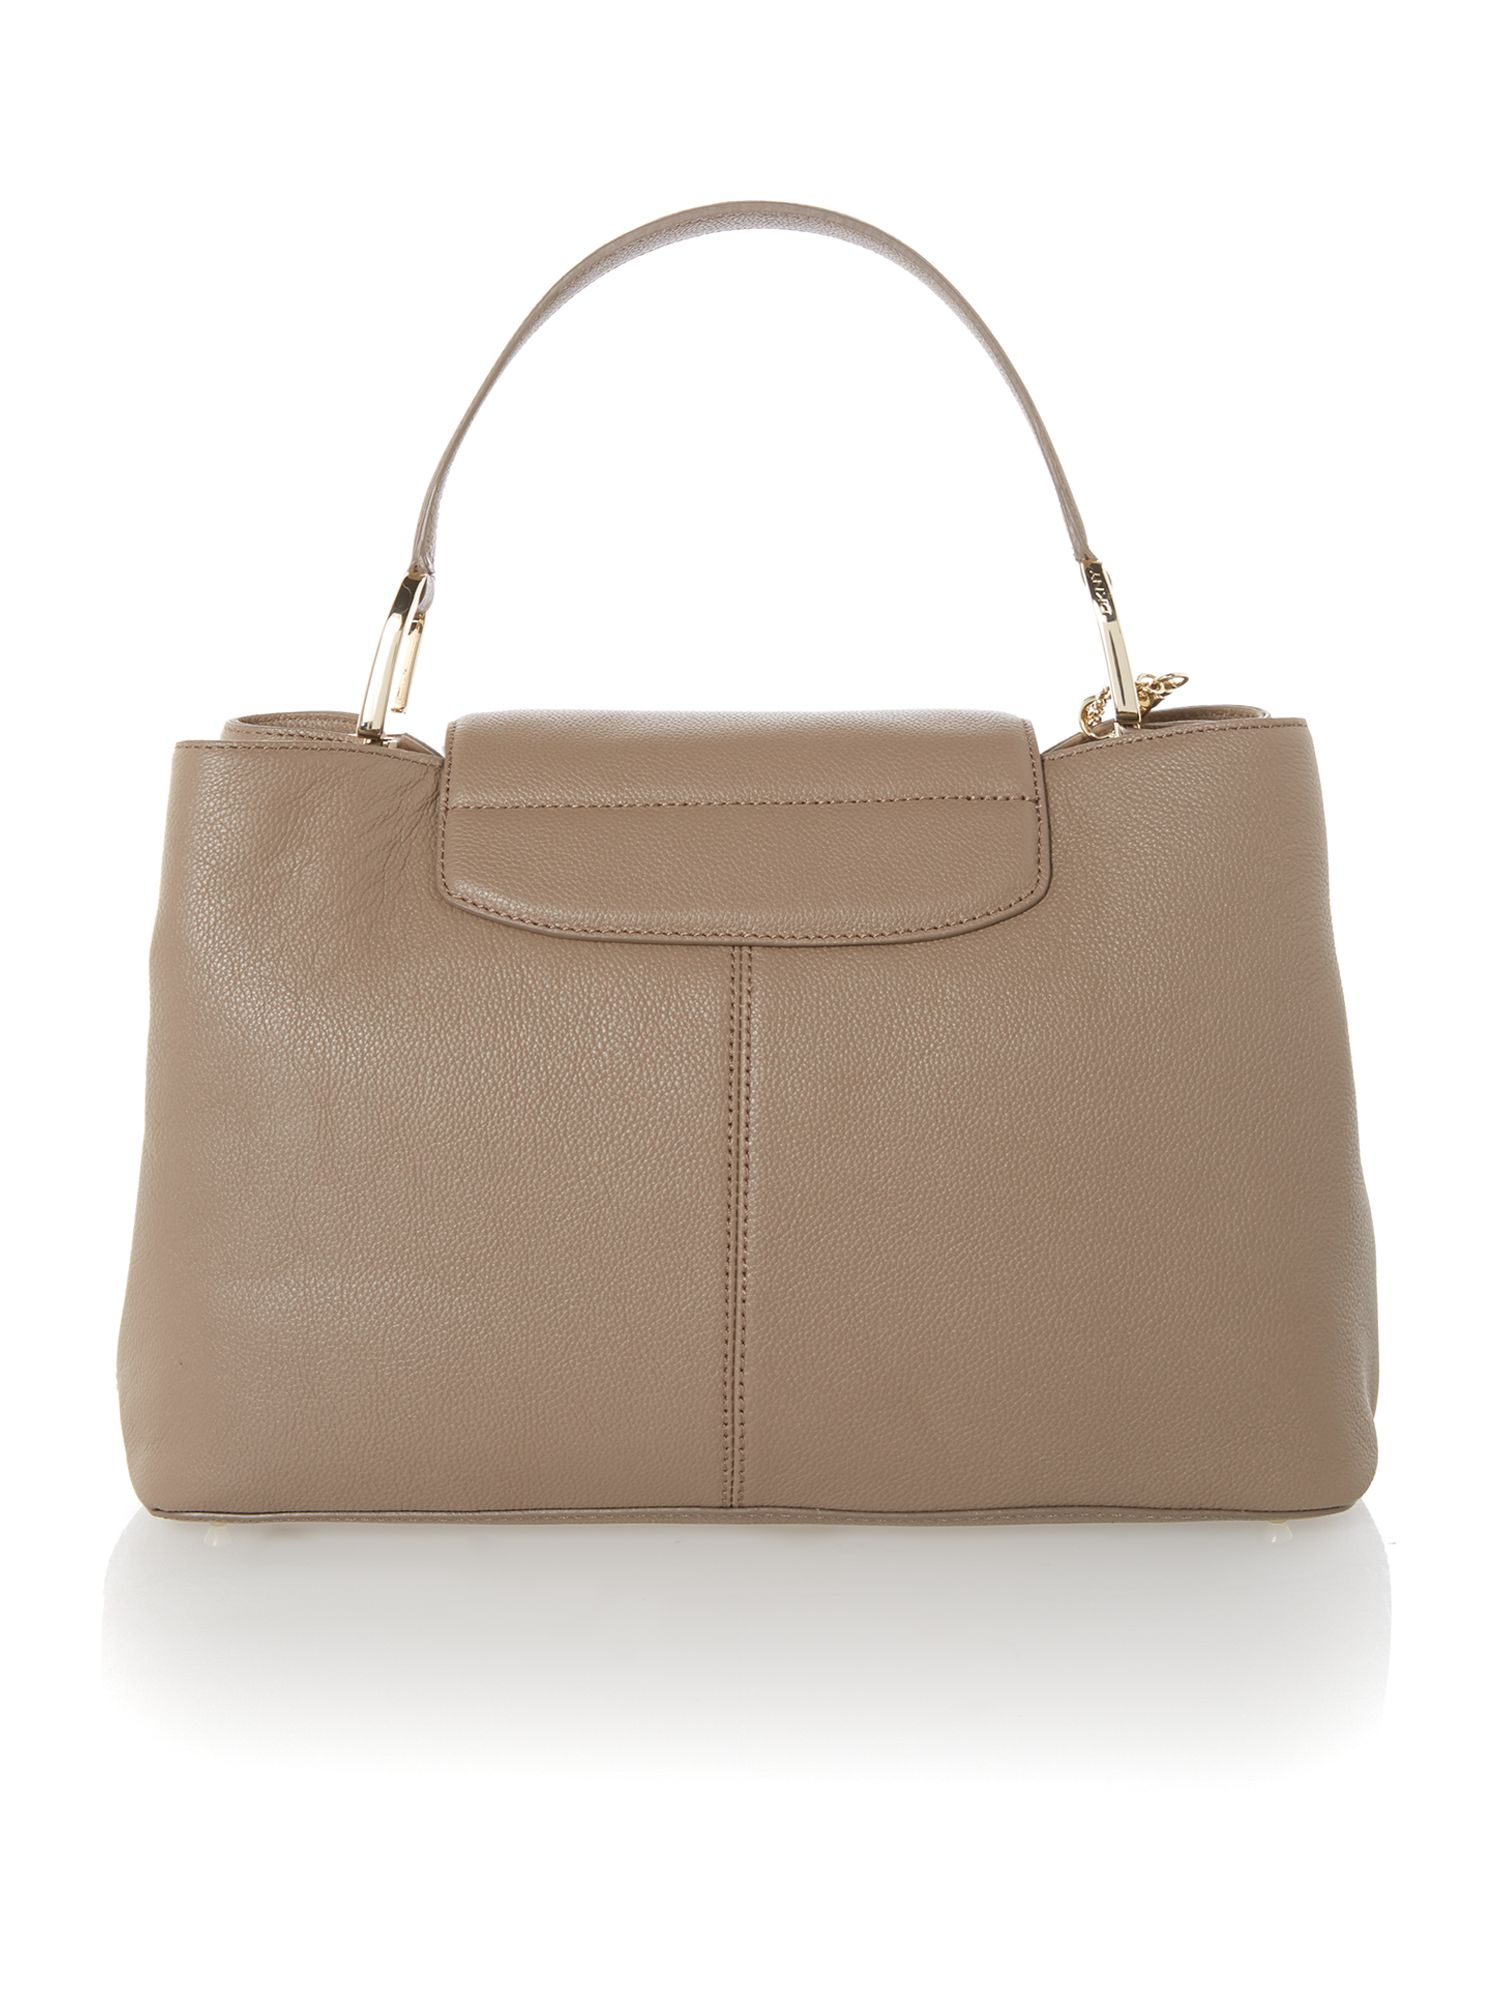 Chelsea brown large tote bag with chain detail